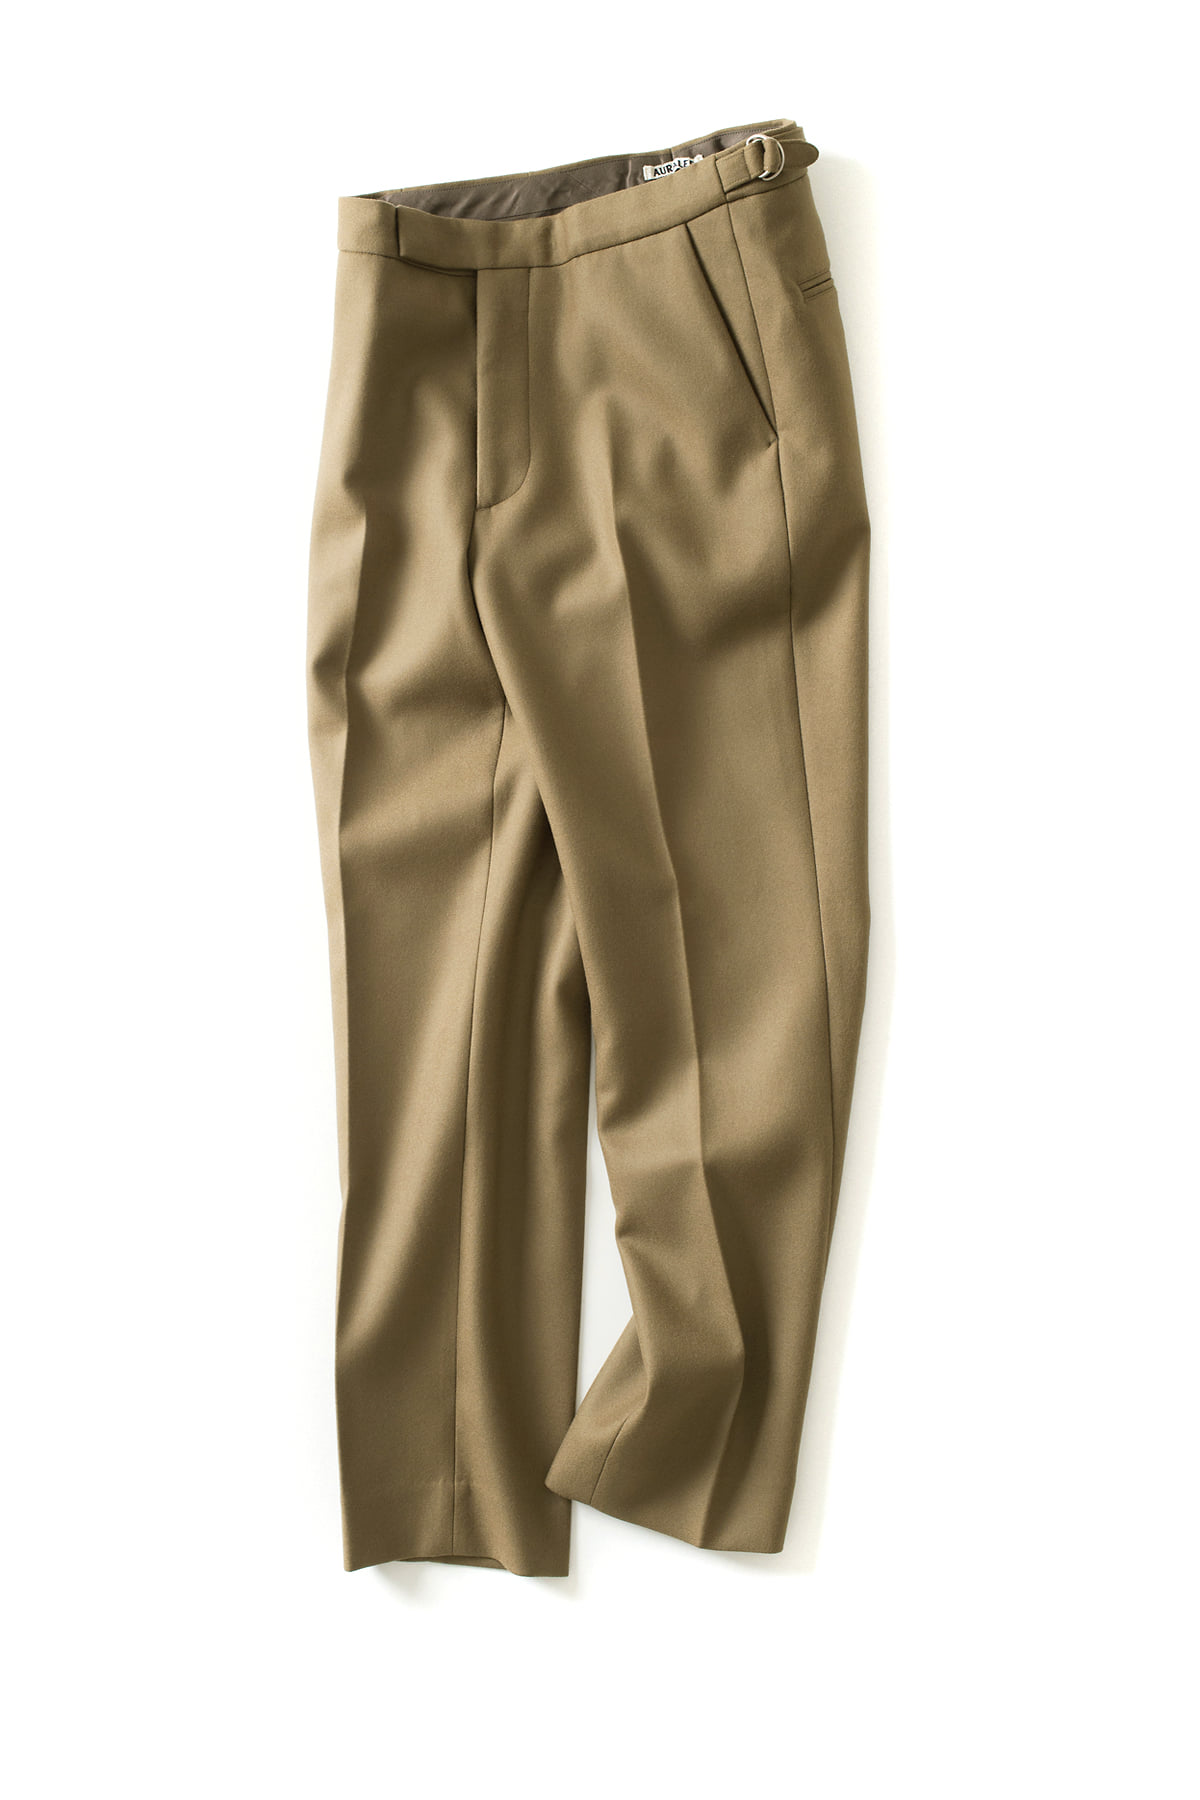 Auralee : Light Melton Slacks (Khaki)